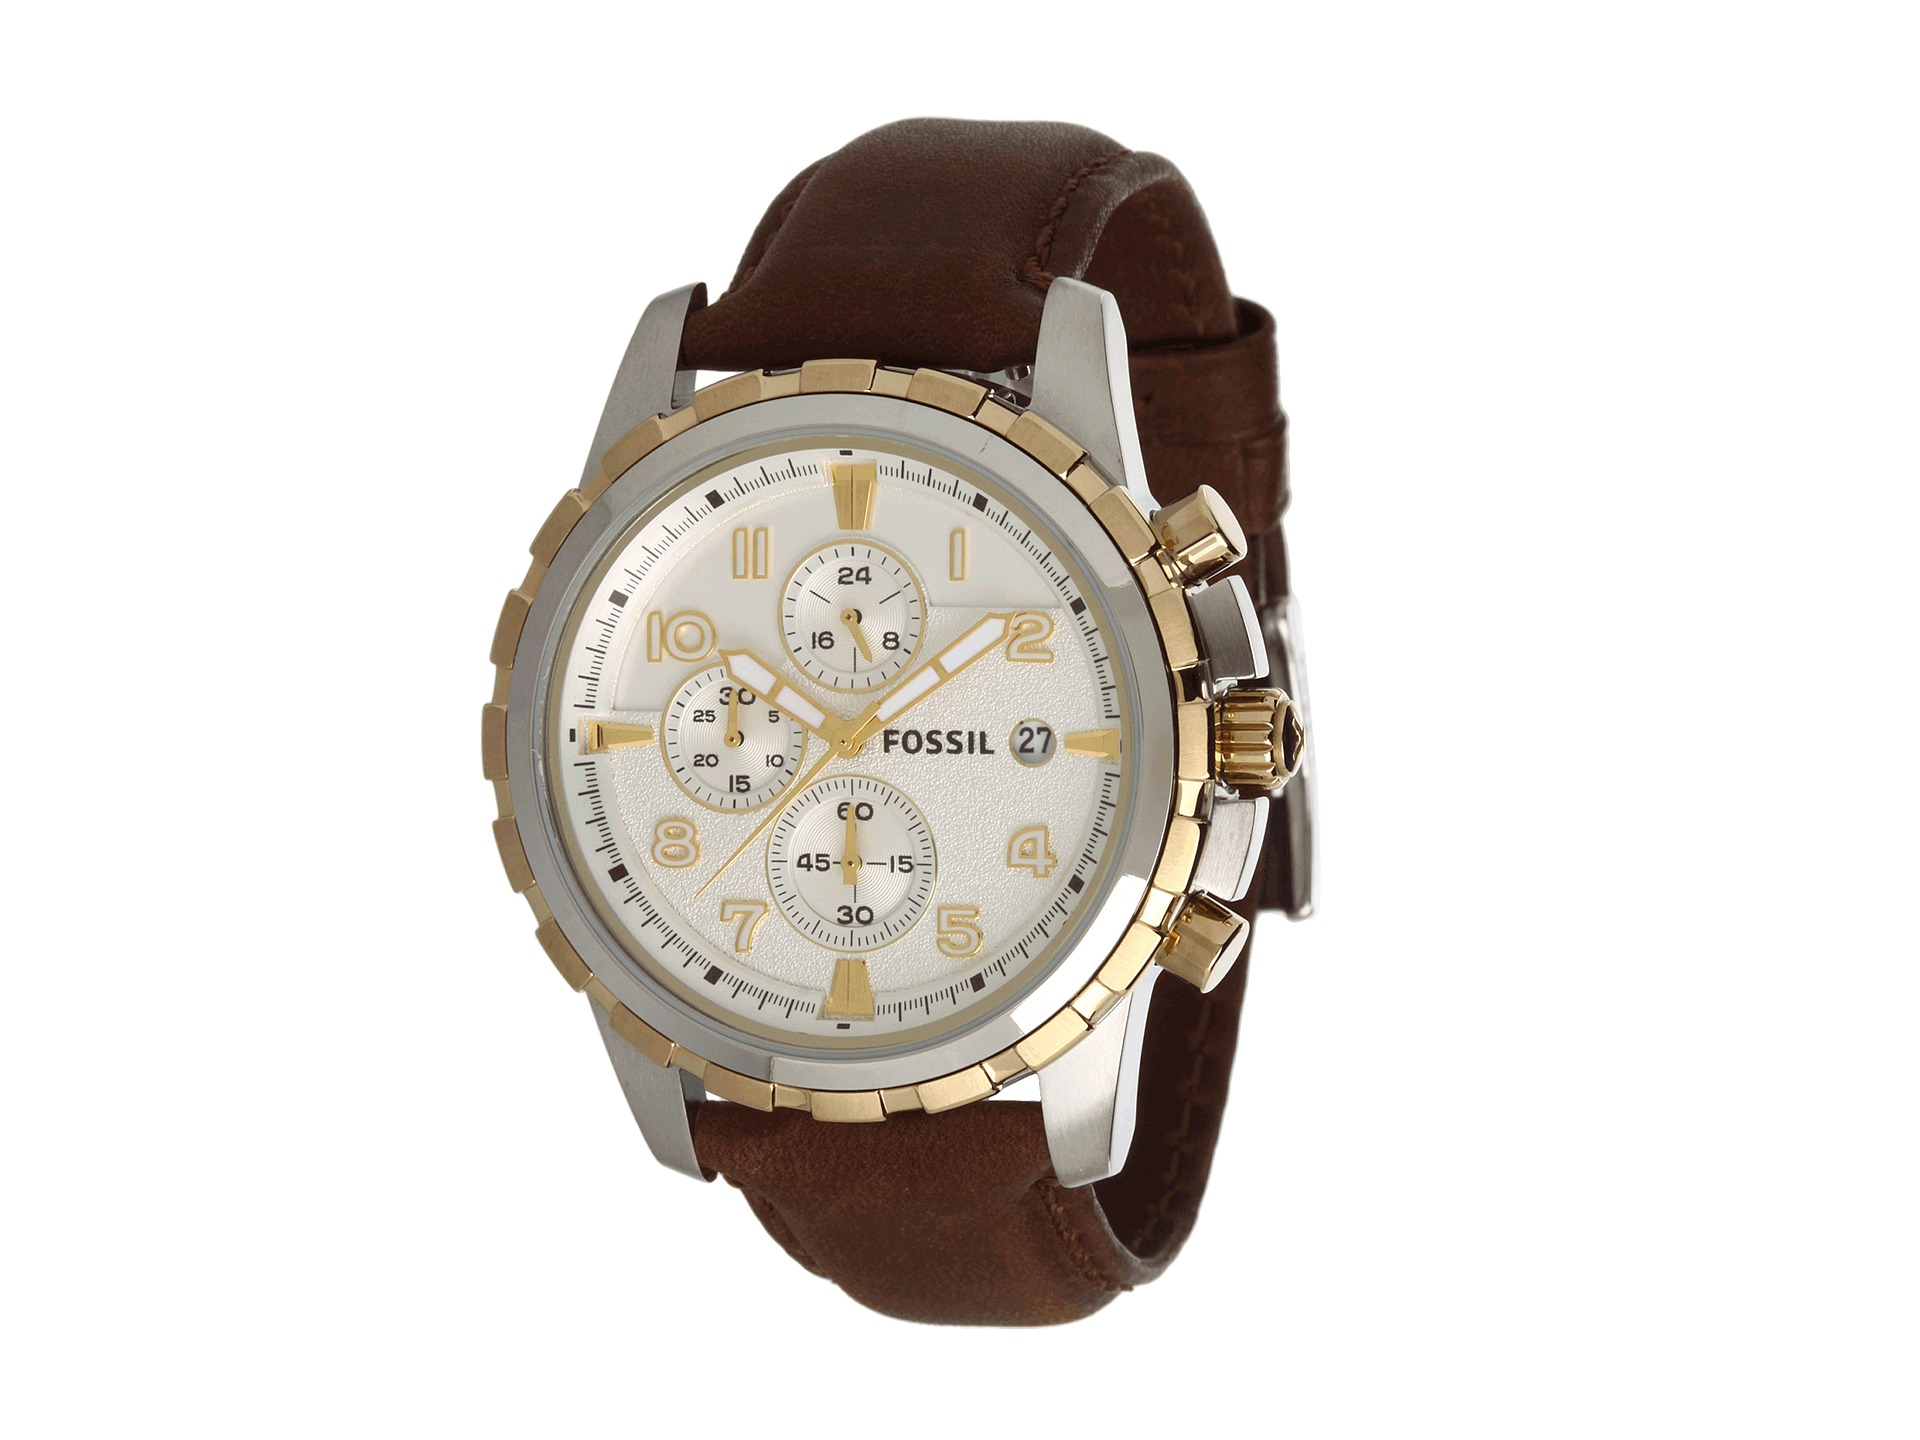 Fossil Chronograph Fs5022 Jam Tangan Pria Daftar Harga Termurah Valentino Rudy Vr109 2155 Wanita Silver Gold Free Delivery On Eligible Orders Of 20 Or Morefossil Abilene Leather Watch